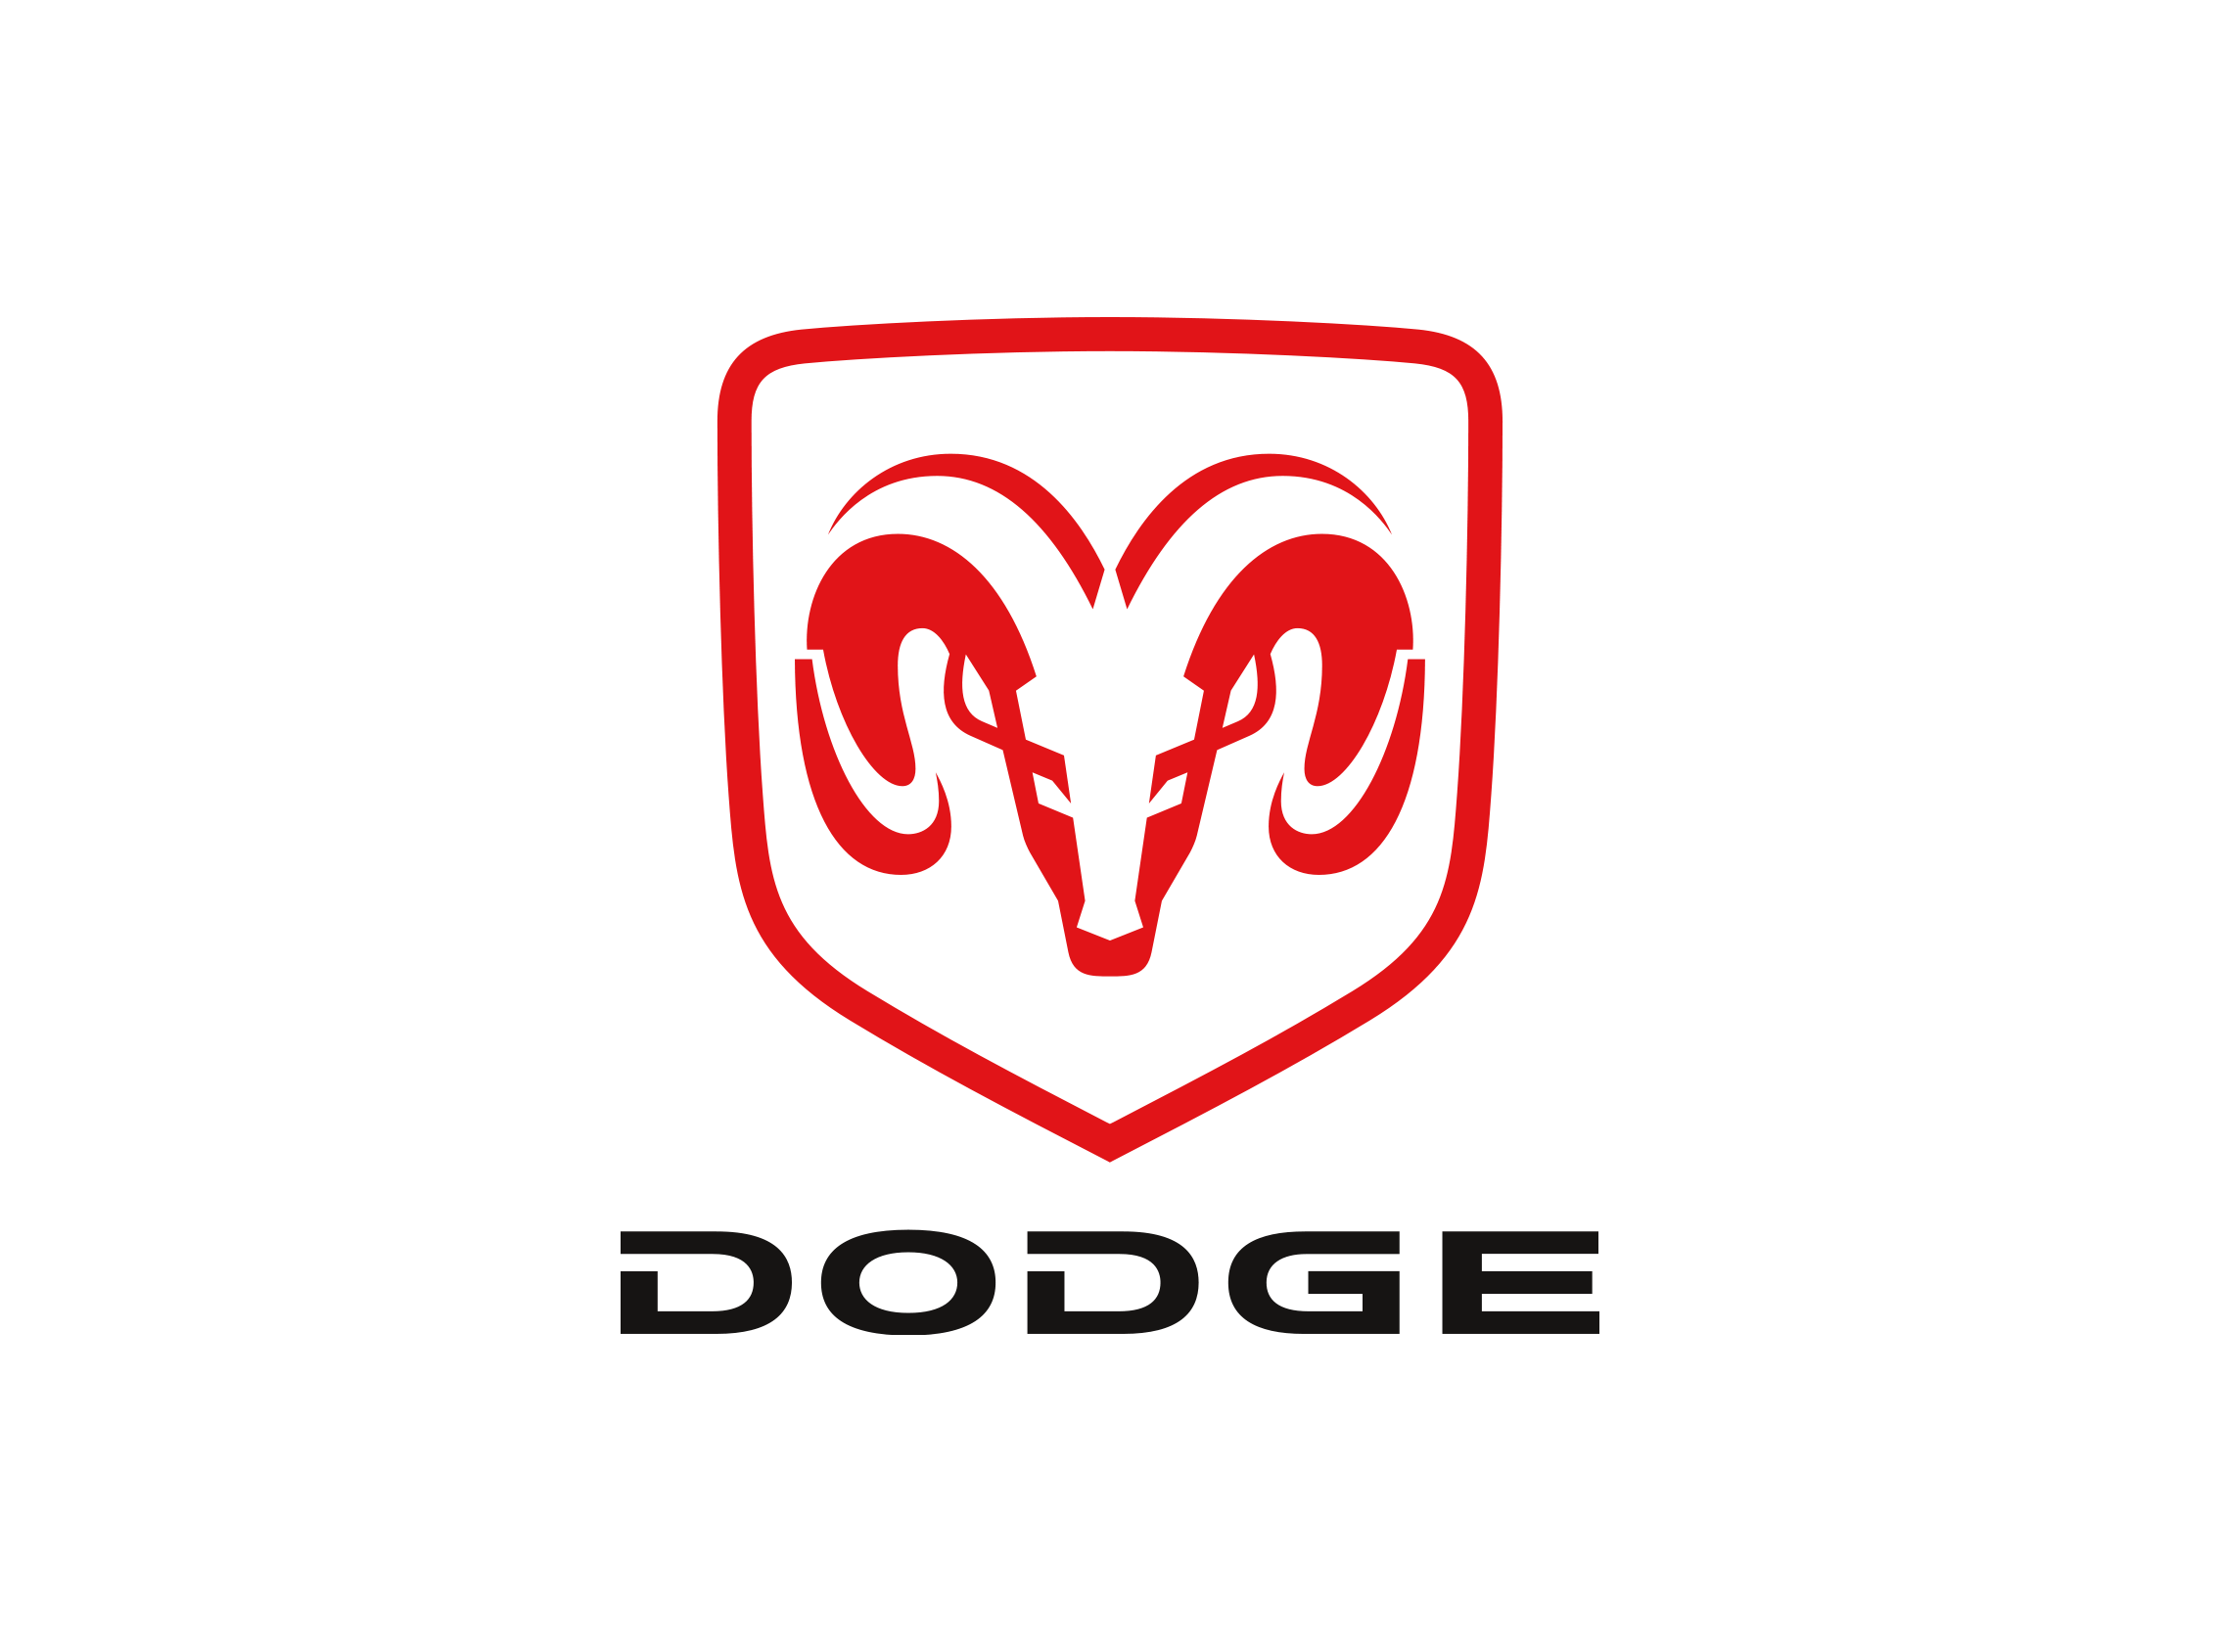 DODGE MOTOR IMPORT BRANDS VOITURE IMPORT USA MIAMI IMPORT VOITURE EUROP IMPORT USA MOTOR IMPORT7 - LAMBORGHINI importation voiture des Etats Unis LAMBORGHINI votre mandataire automobile usa